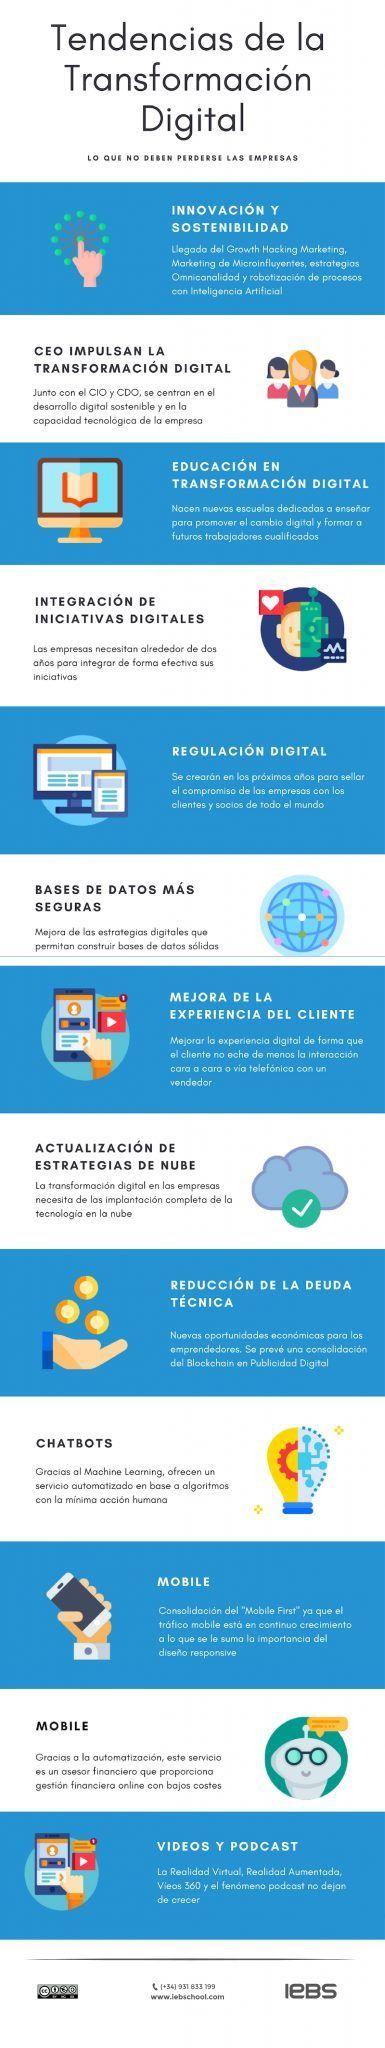 Tendencias Digitales para las empresas de hoy - infografia tendencias transformacion digital 01